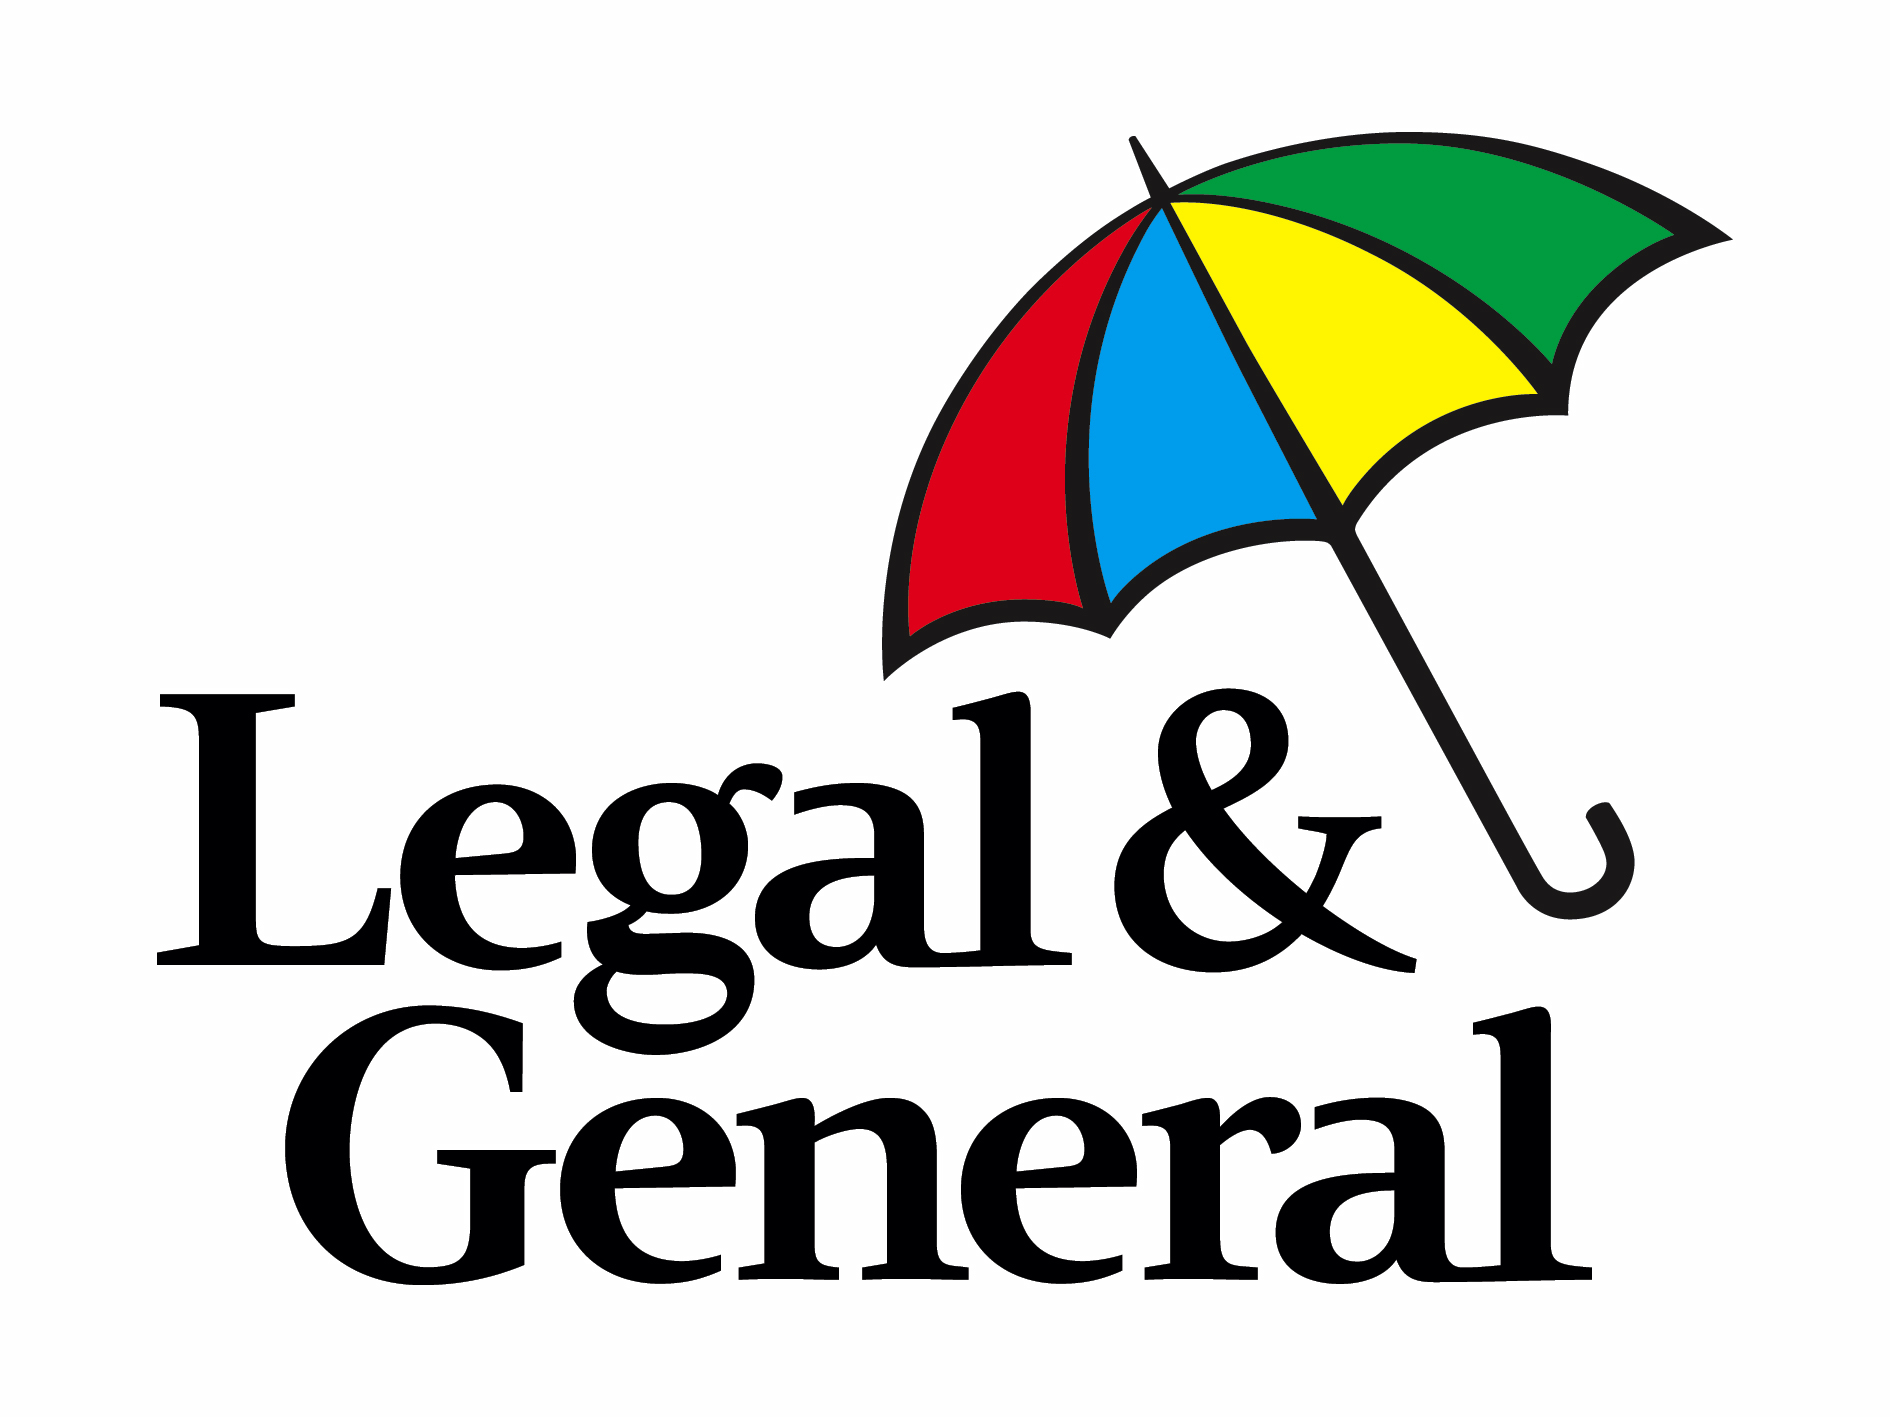 Legal and General logo of umbrella